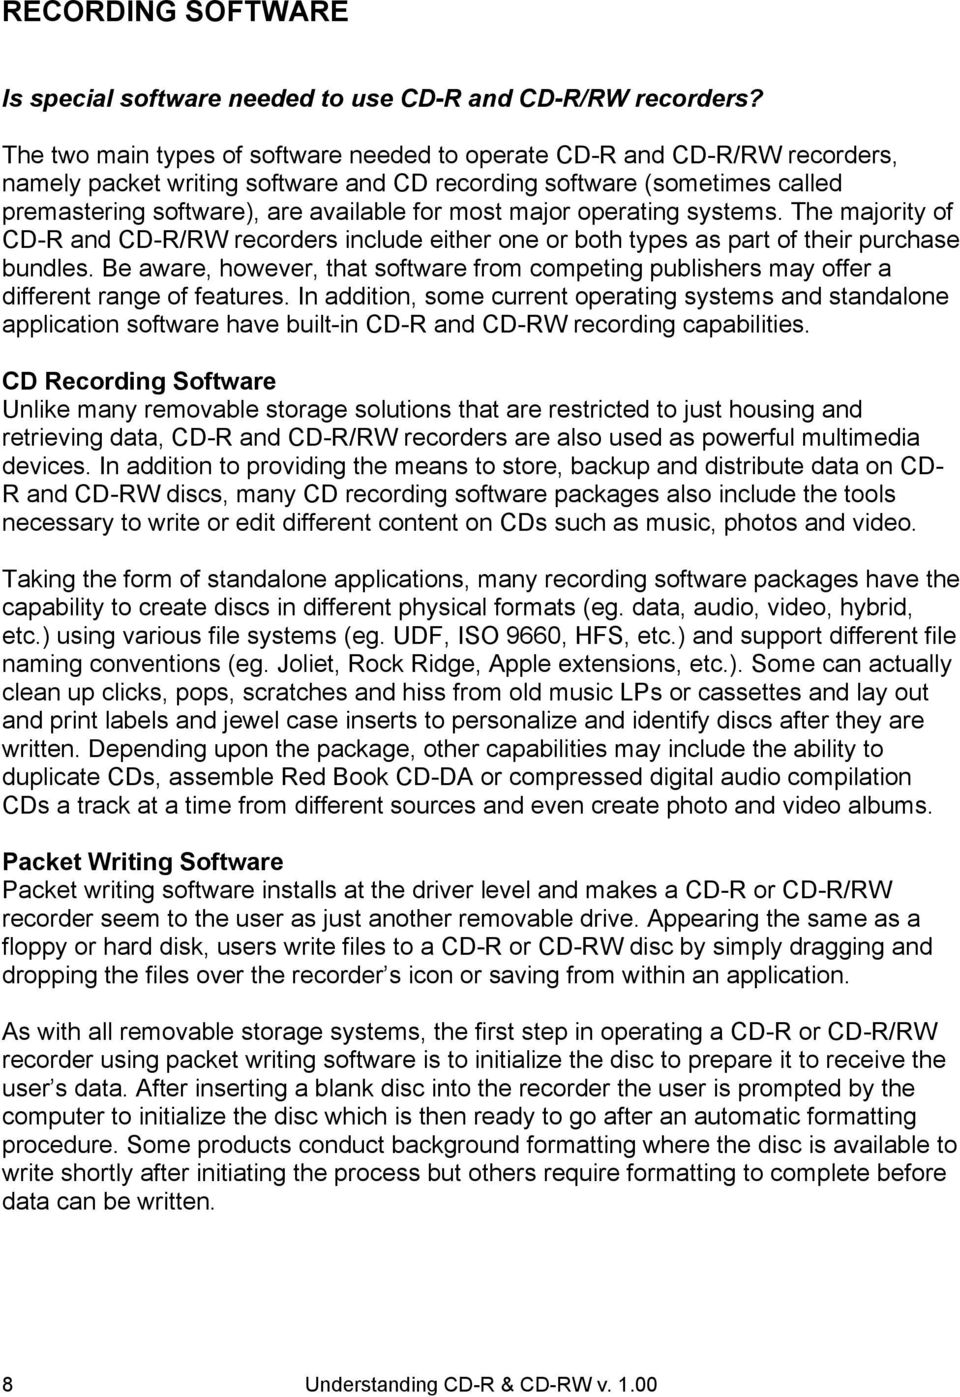 major operating systems. The majority of CD-R and CD-R/RW recorders include either one or both types as part of their purchase bundles.